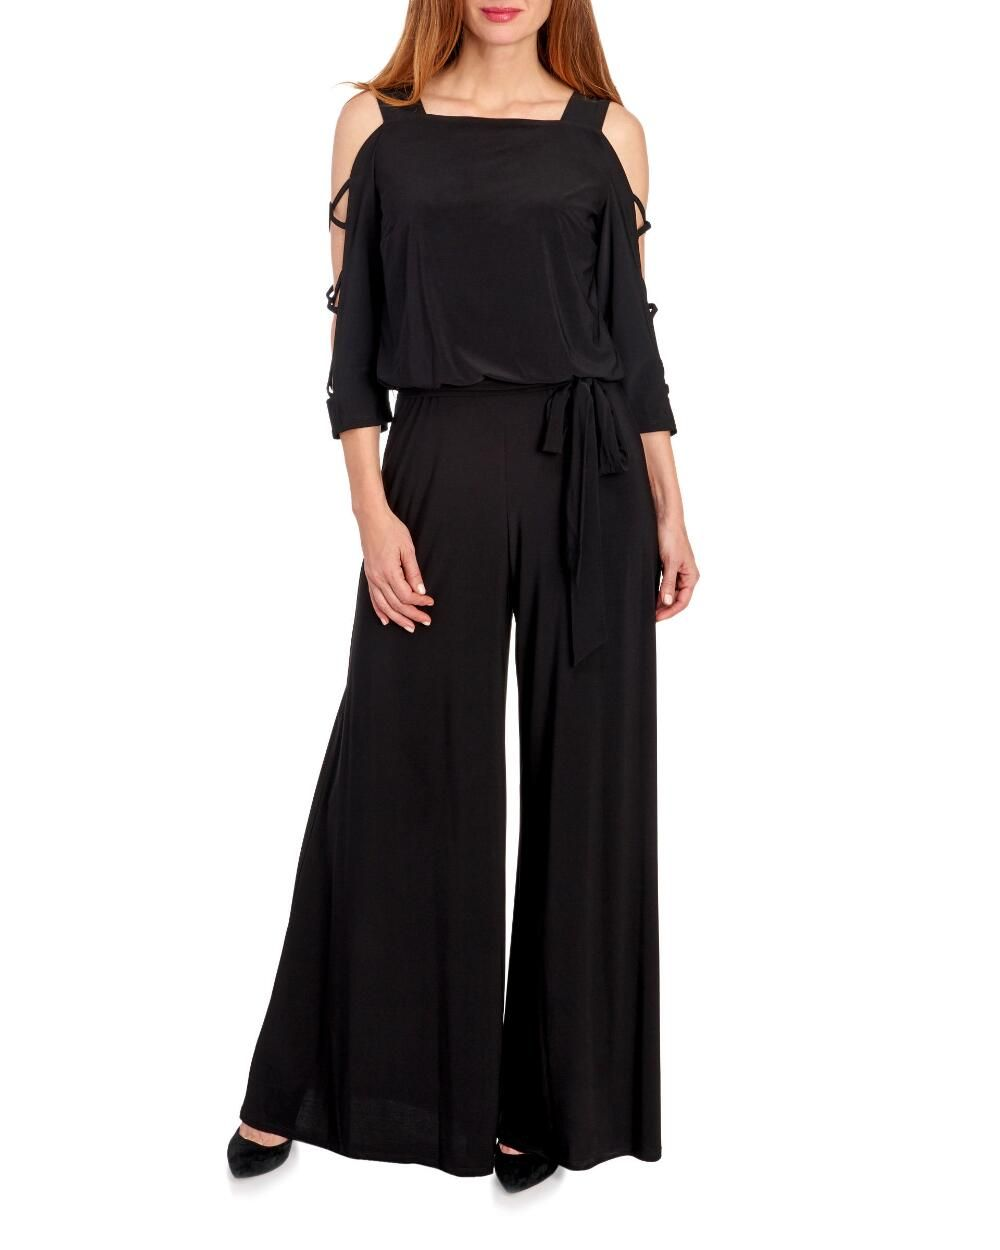 Stein Mart Jumpsuit With Sleeves Jumpers For Women Casual Dresses [ 1250 x 1000 Pixel ]